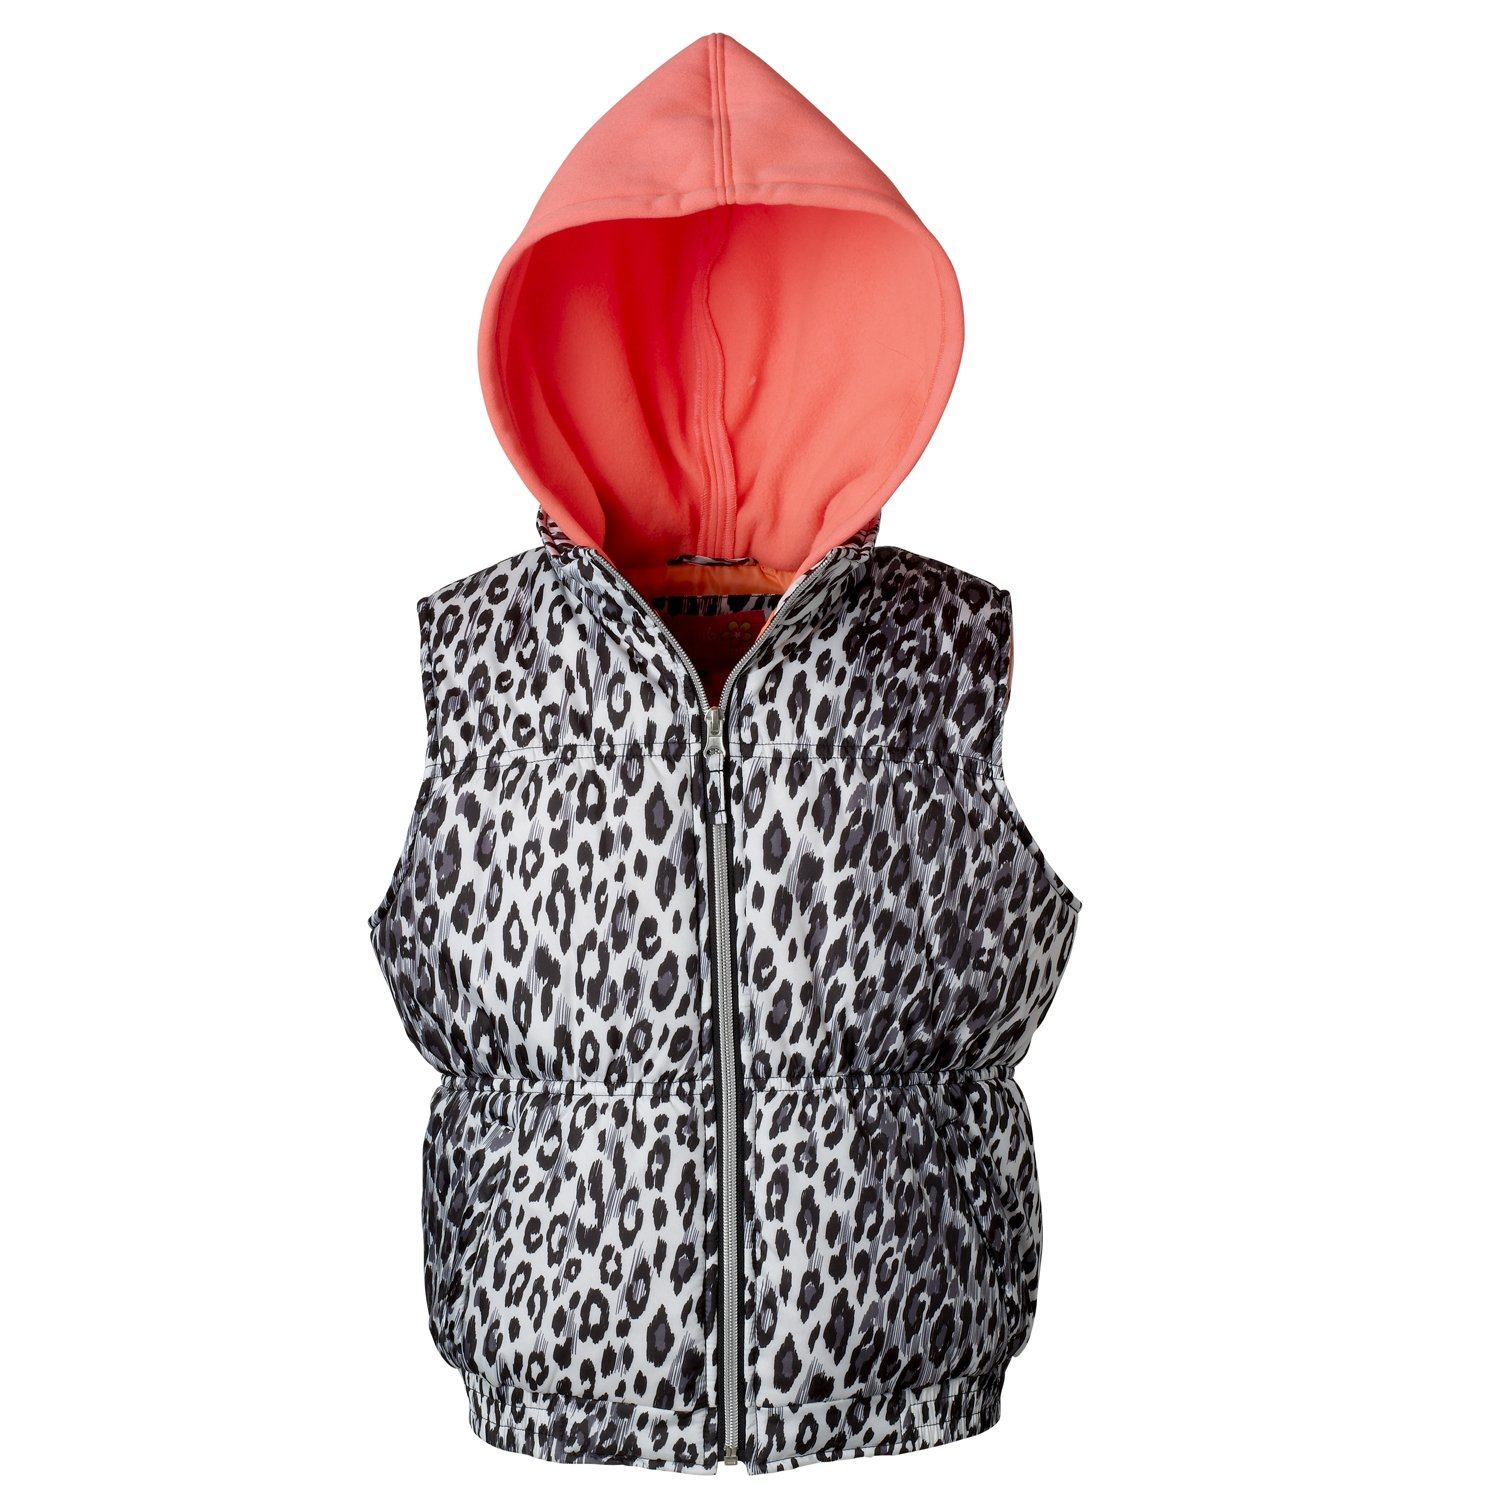 Pink Platinum Puffer Vest For Toddler Girls With Fleece Hood & Cheetah Print